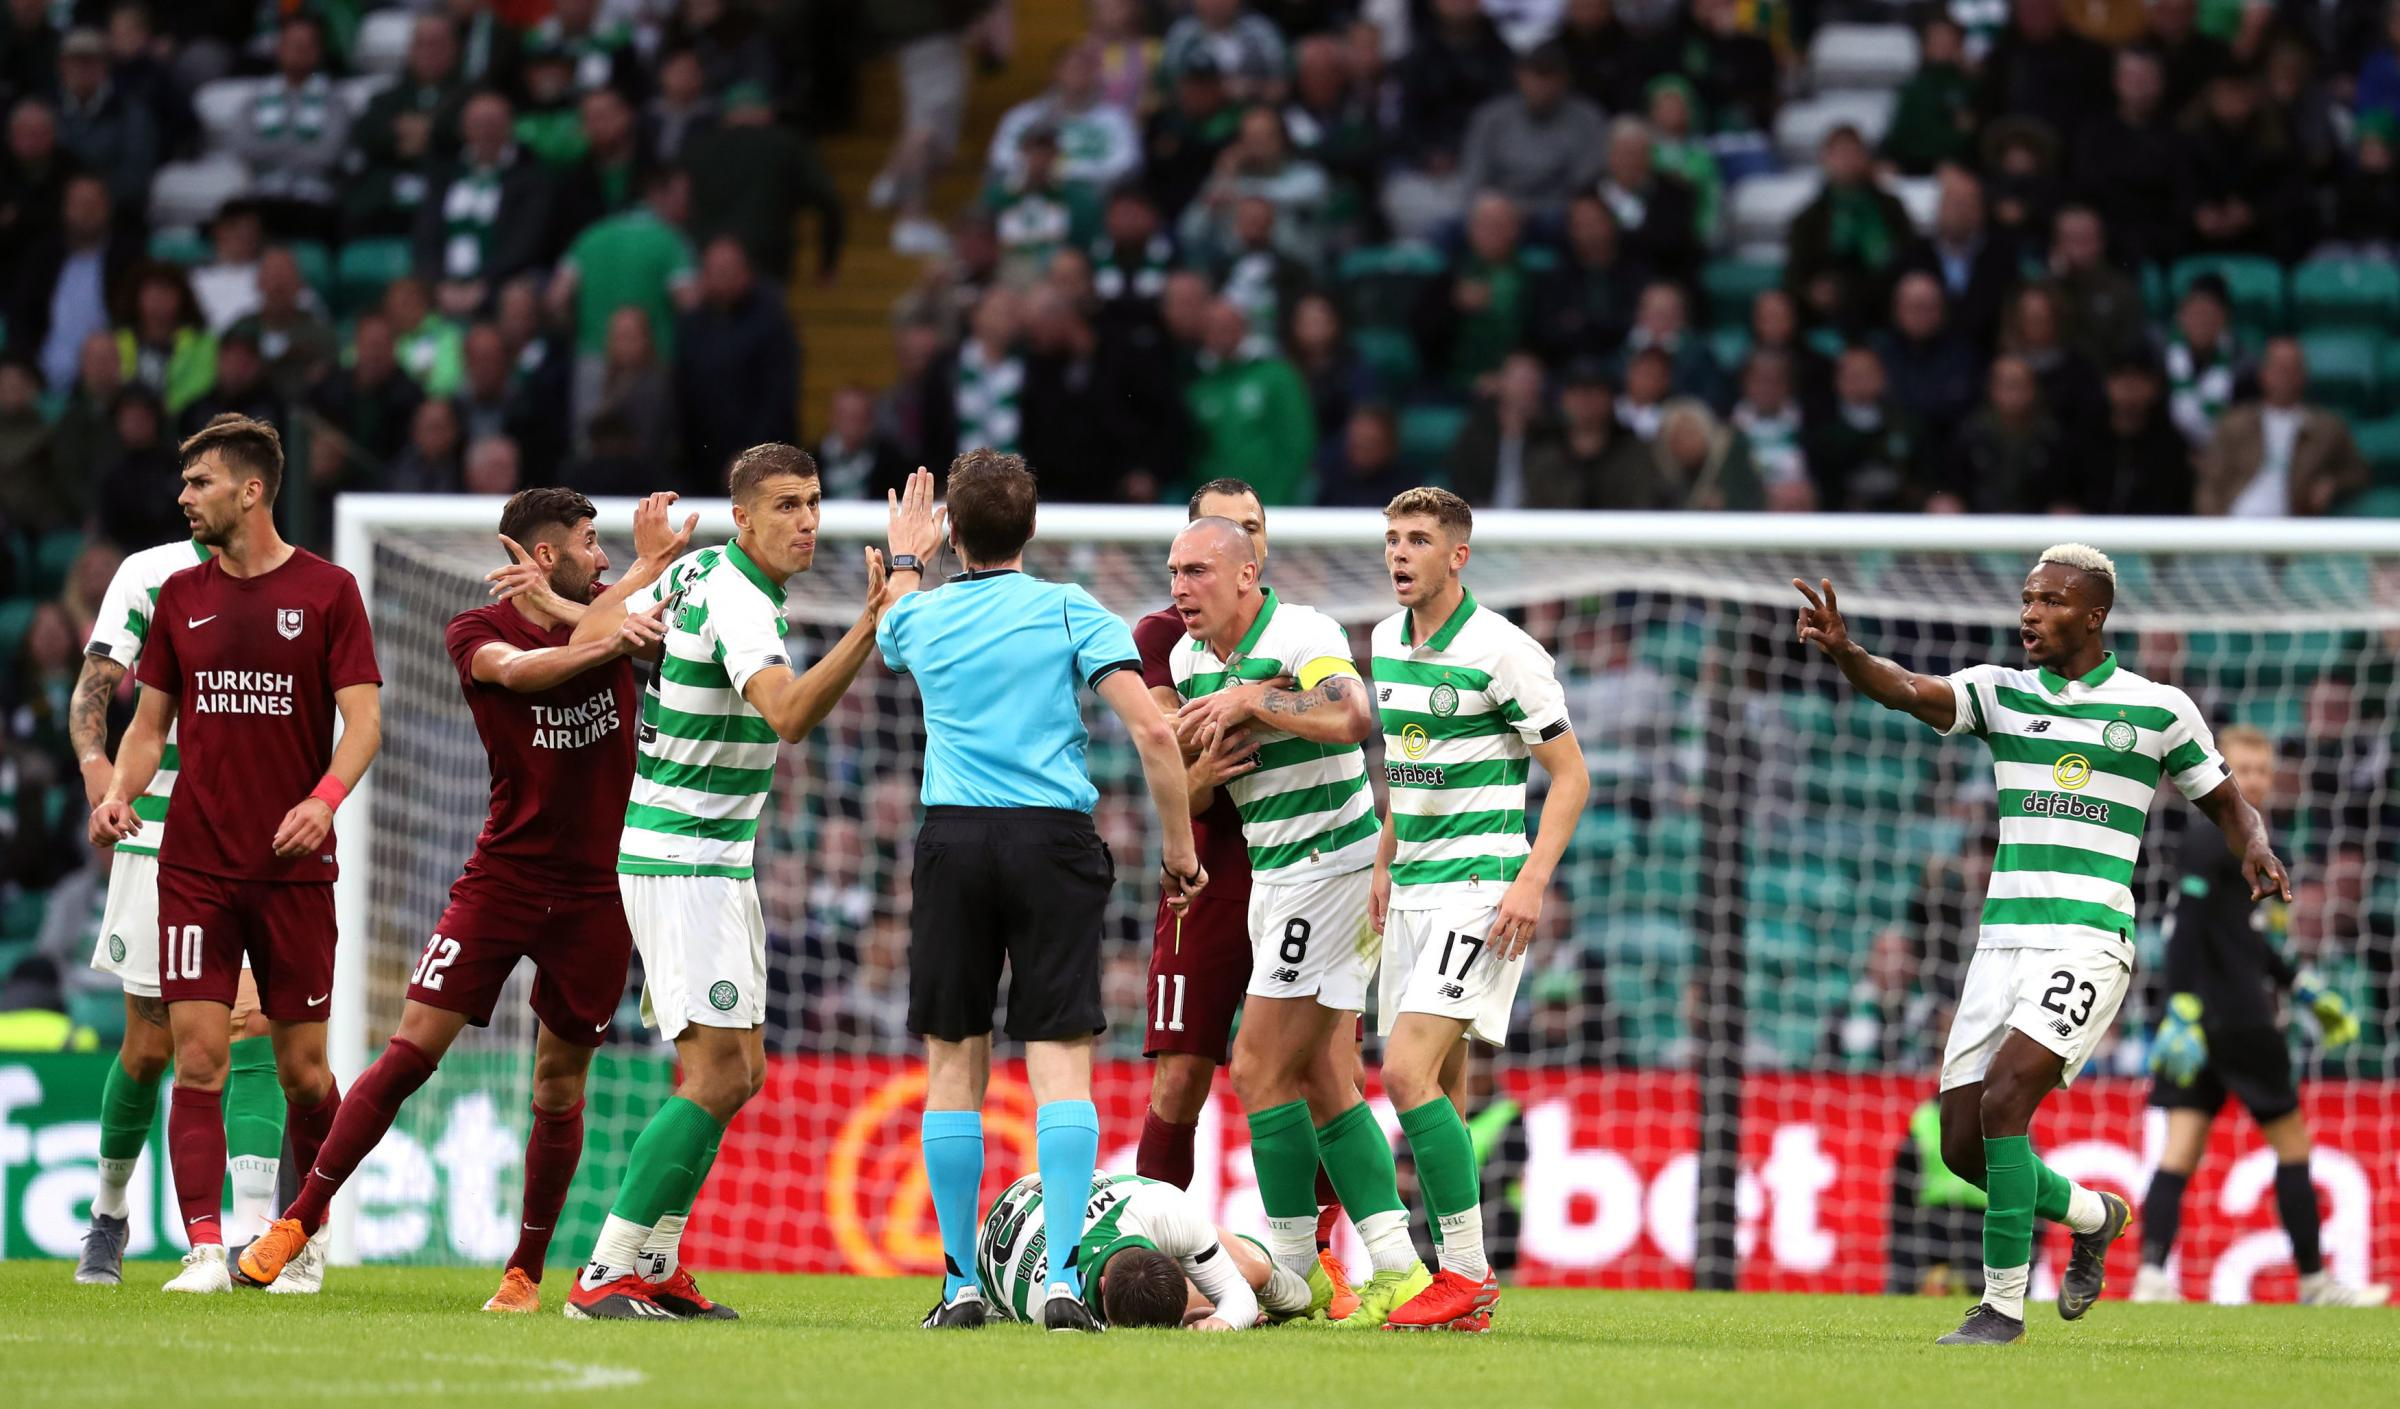 Who can Celtic be drawn against in the Champions League third qualifying round?